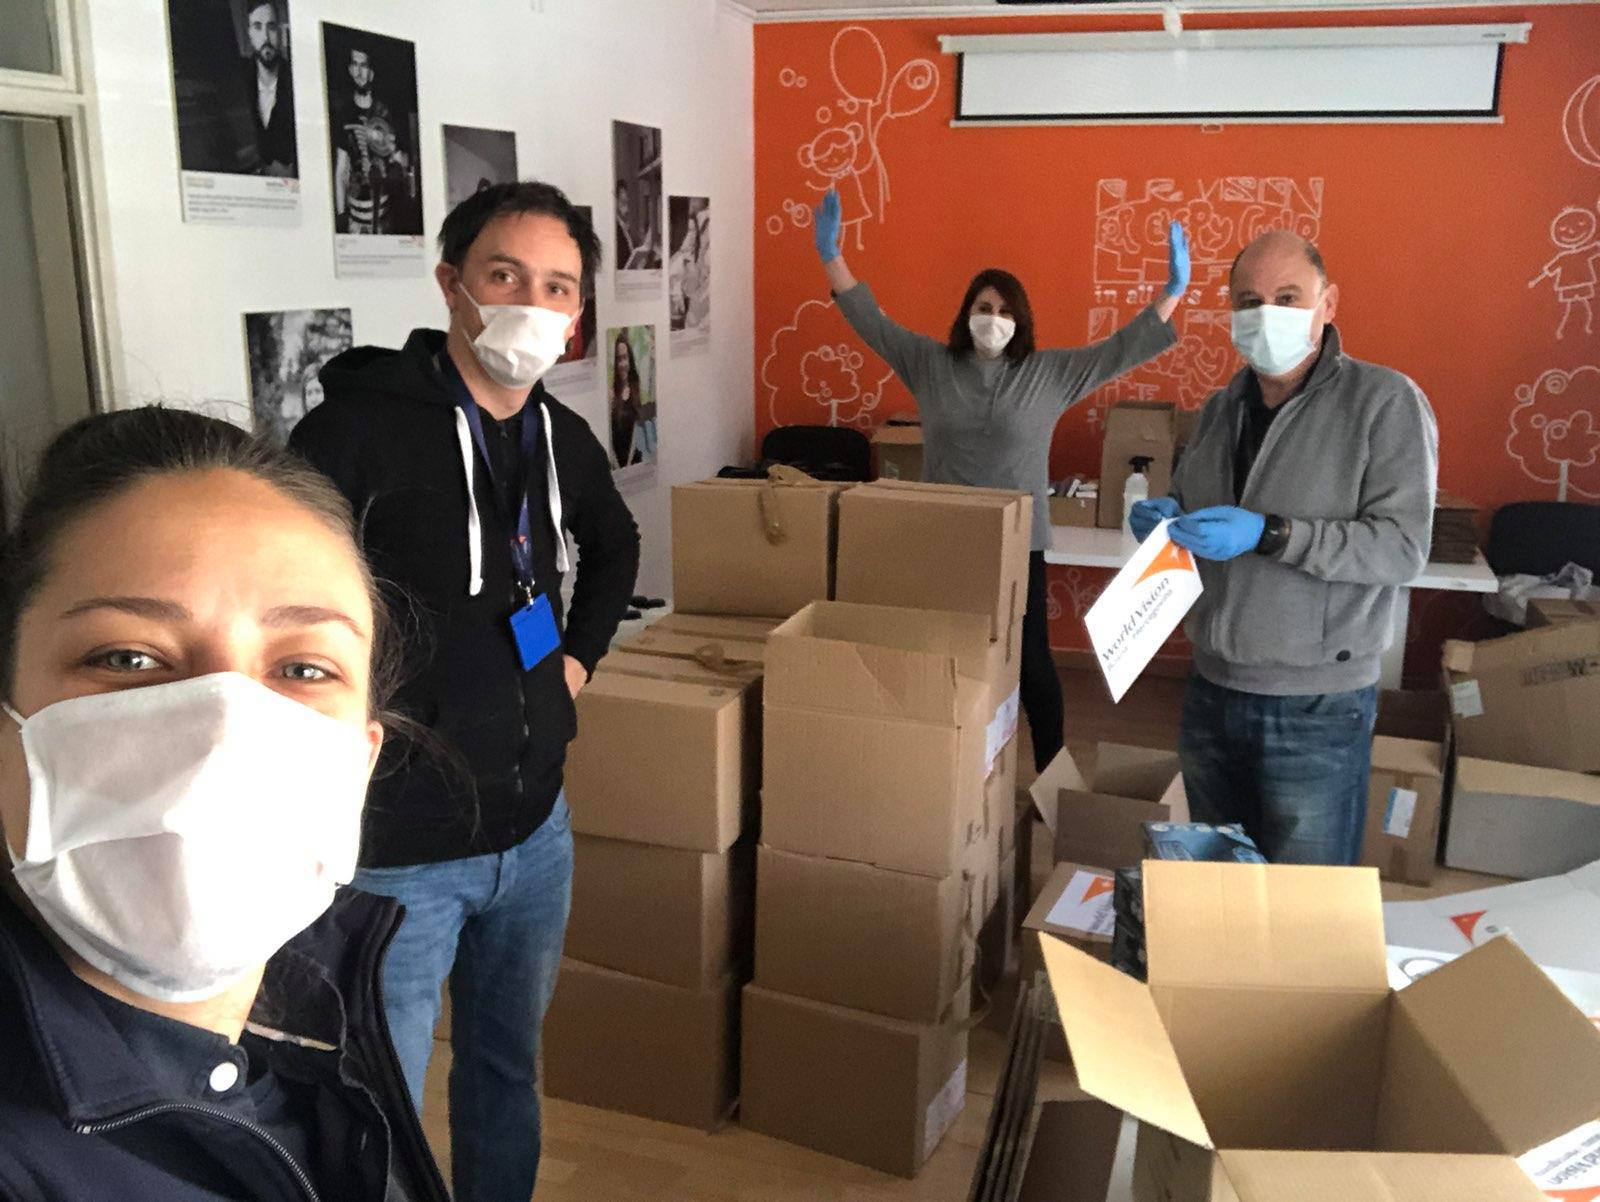 Darko Arsenovski, World Vision BiH Security Officer in the centre, team selfie while packing H&H items